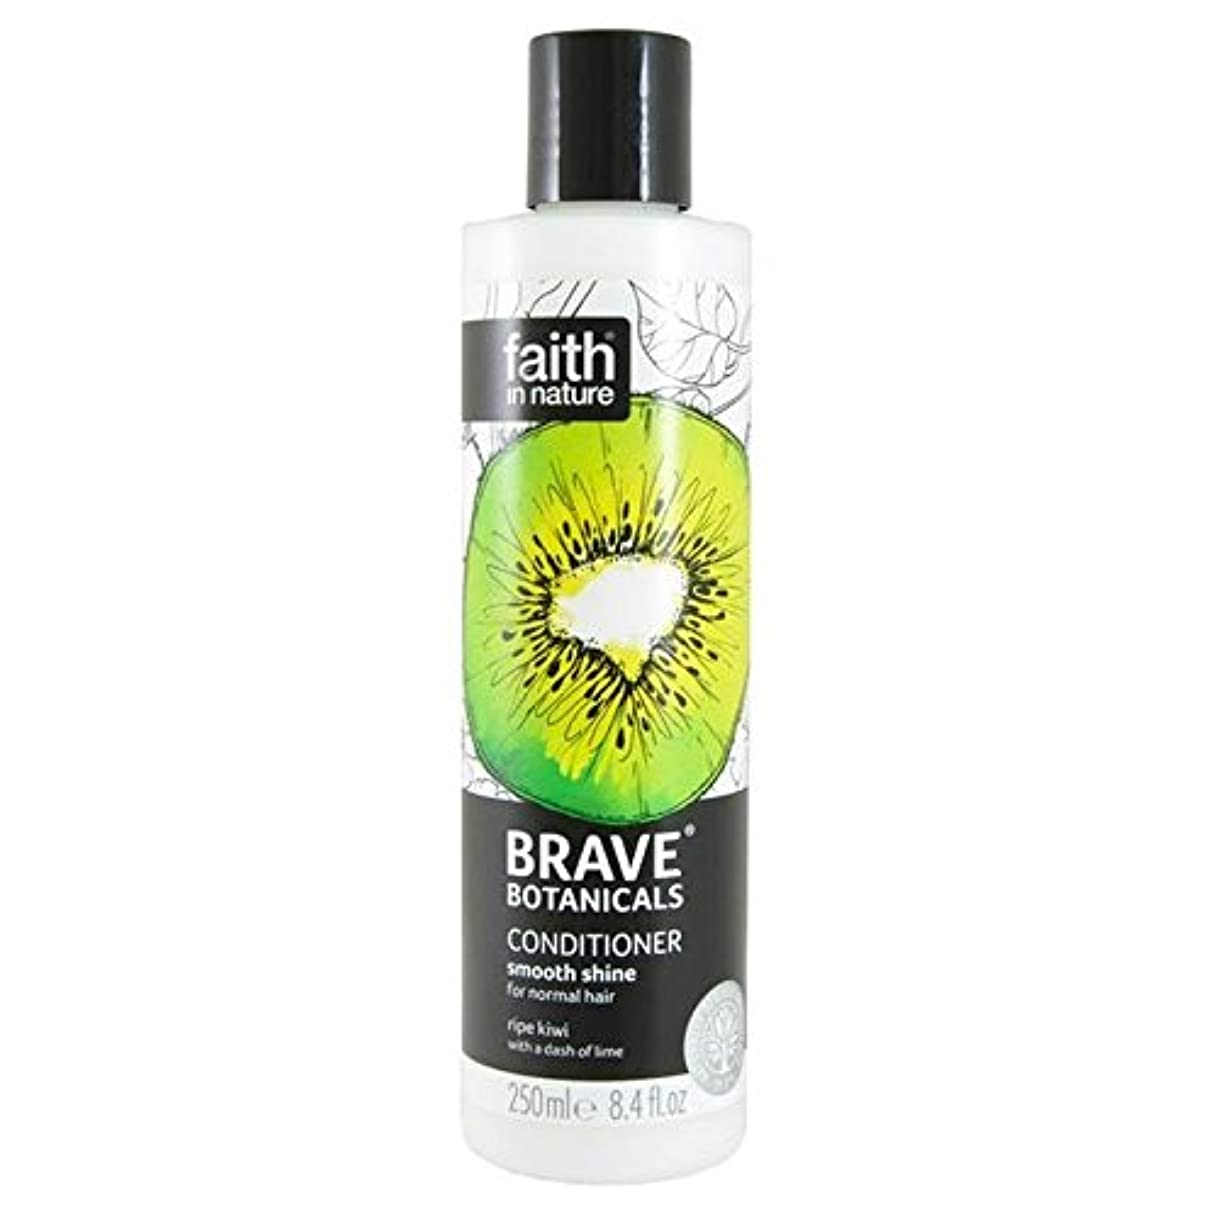 Brave Botanicals Kiwi & Lime Smooth Shine Conditioner 250ml (Pack of 2) - (Faith In Nature) 勇敢な植物キウイ&ライムなめらかな輝...